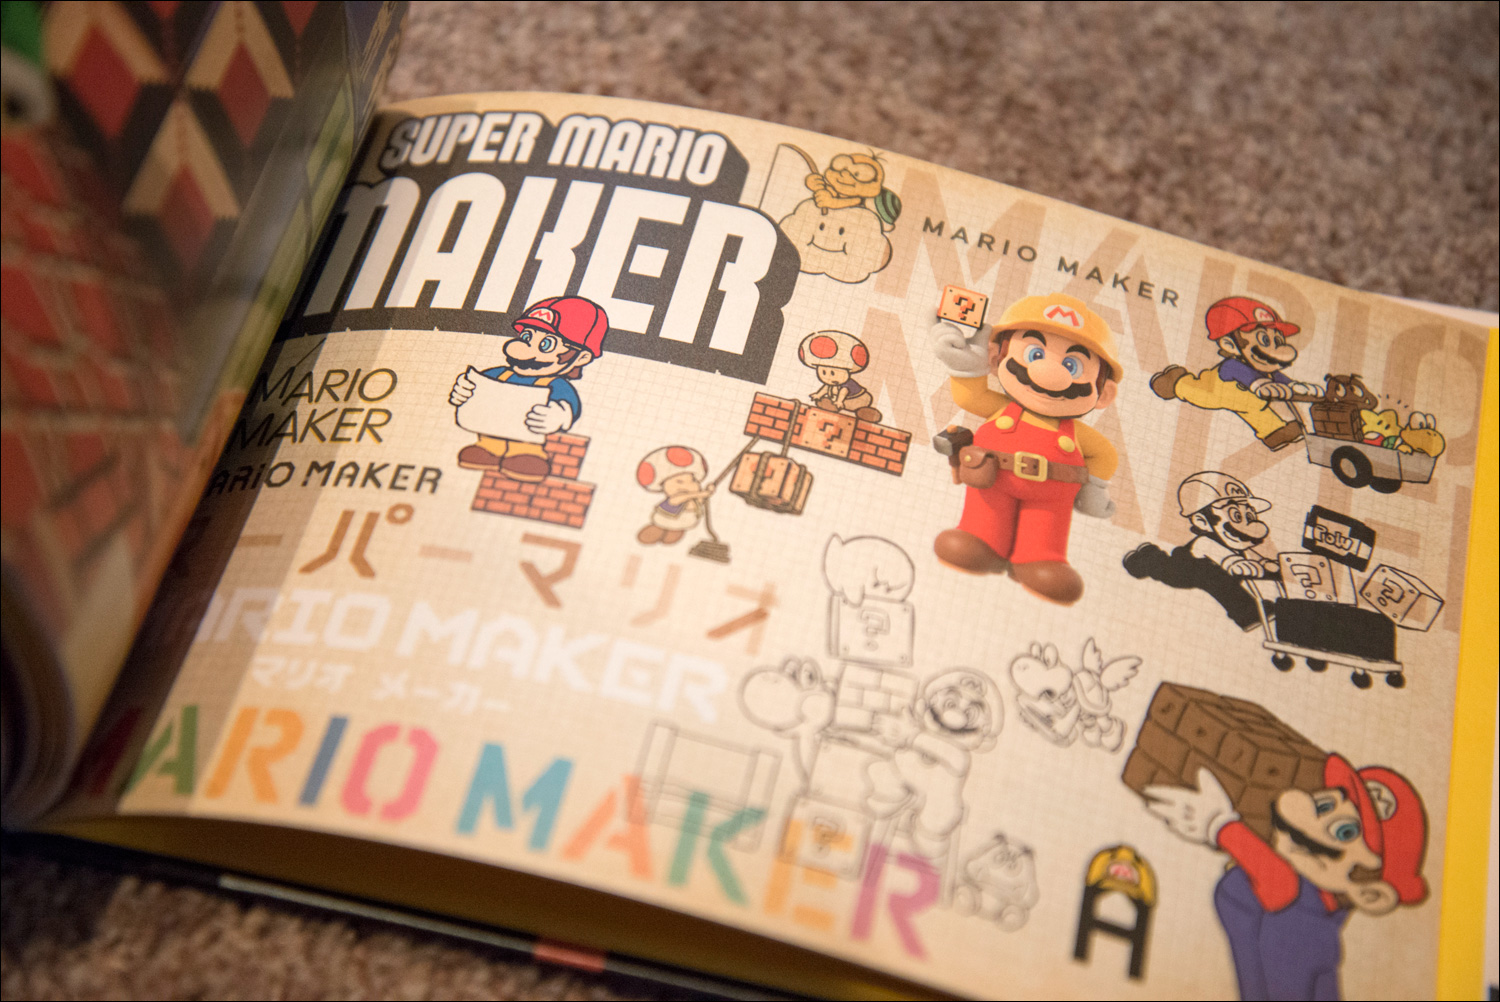 Super-Mario-Maker-Amiibo-Bundle-Artbook-Title-2